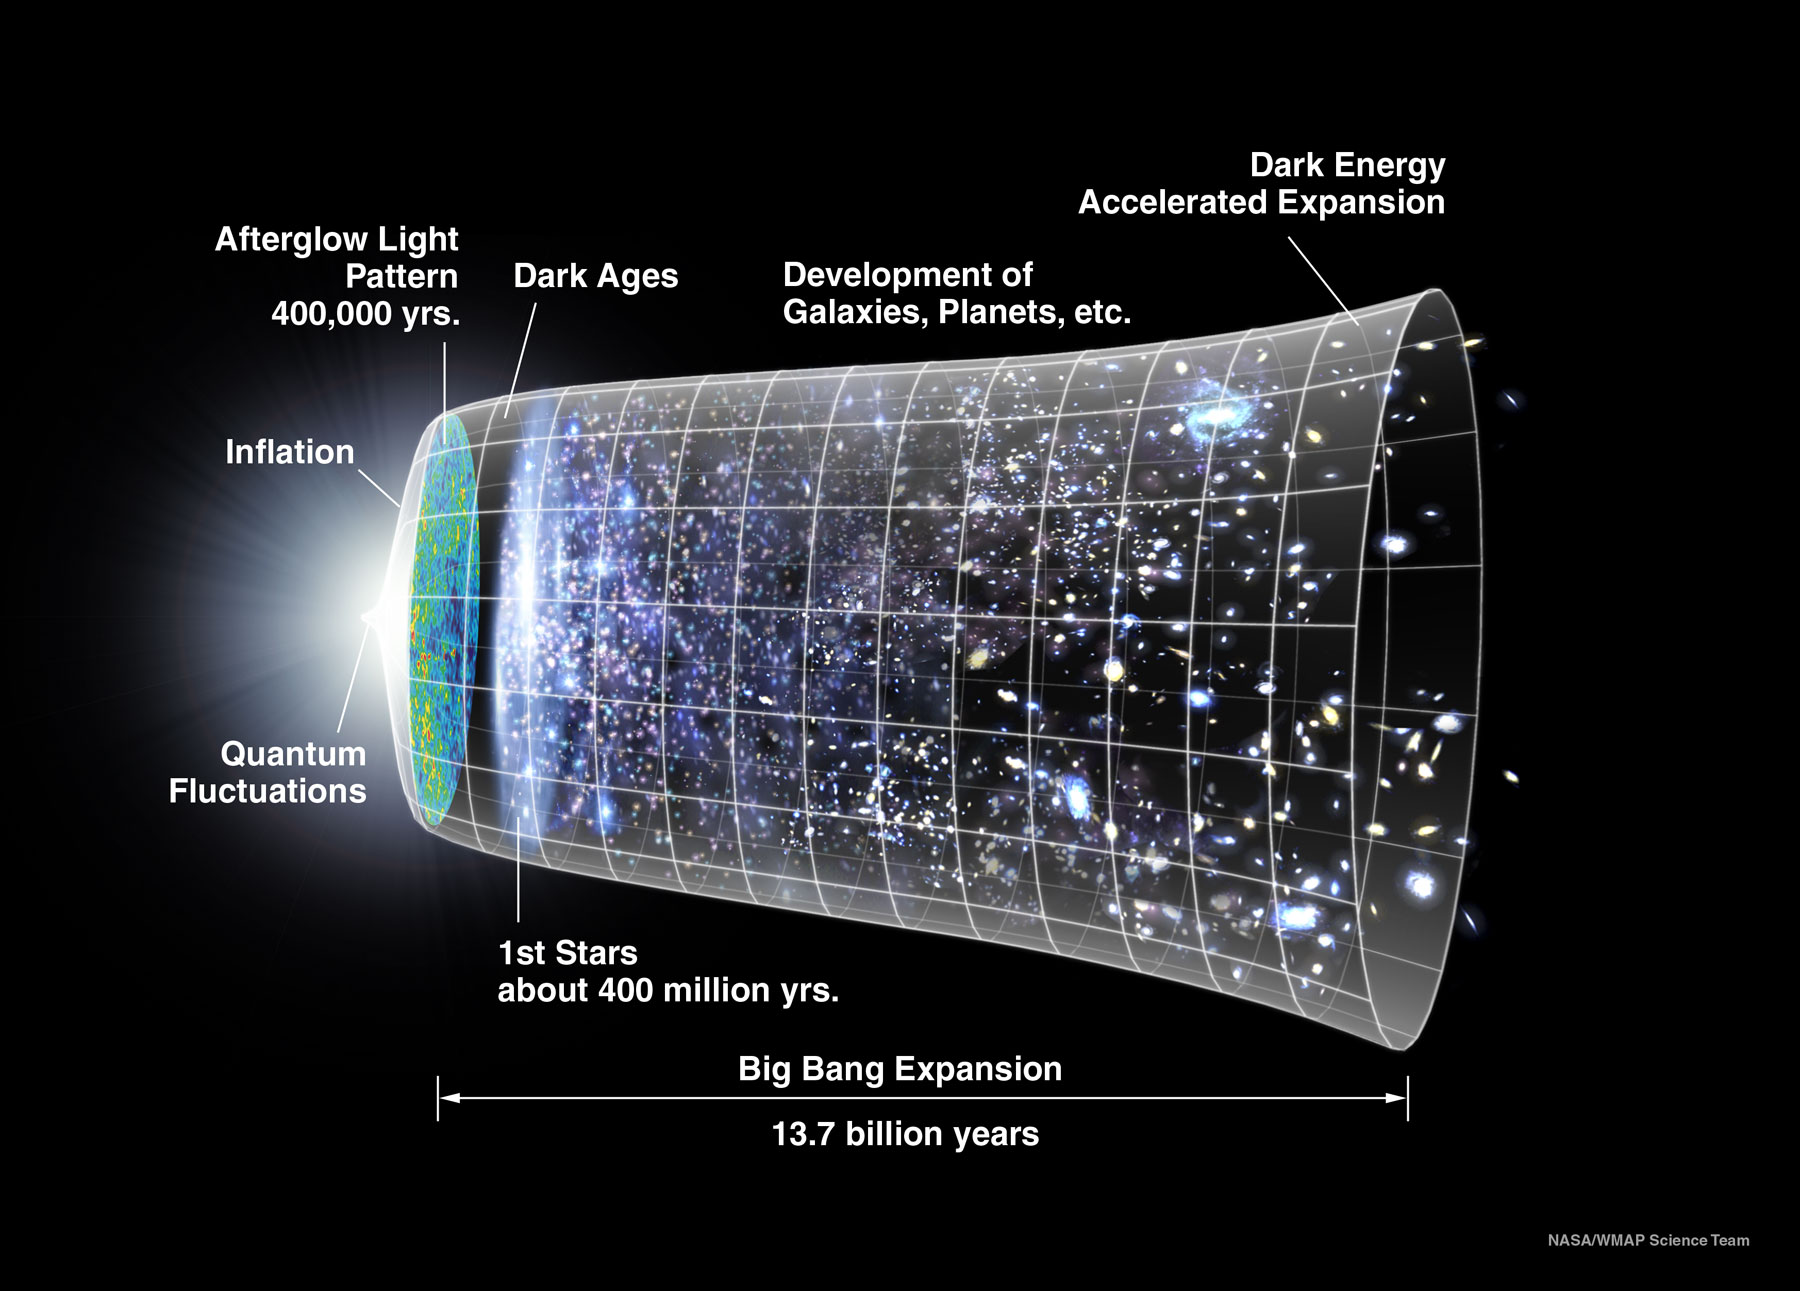 A sideways funnel that fans out at one end encapsulates an illustration of the history of the universe starting with the Big Bang 13.7 billion years ago through the first stars, the development of galaxies, and accelerated expansion.